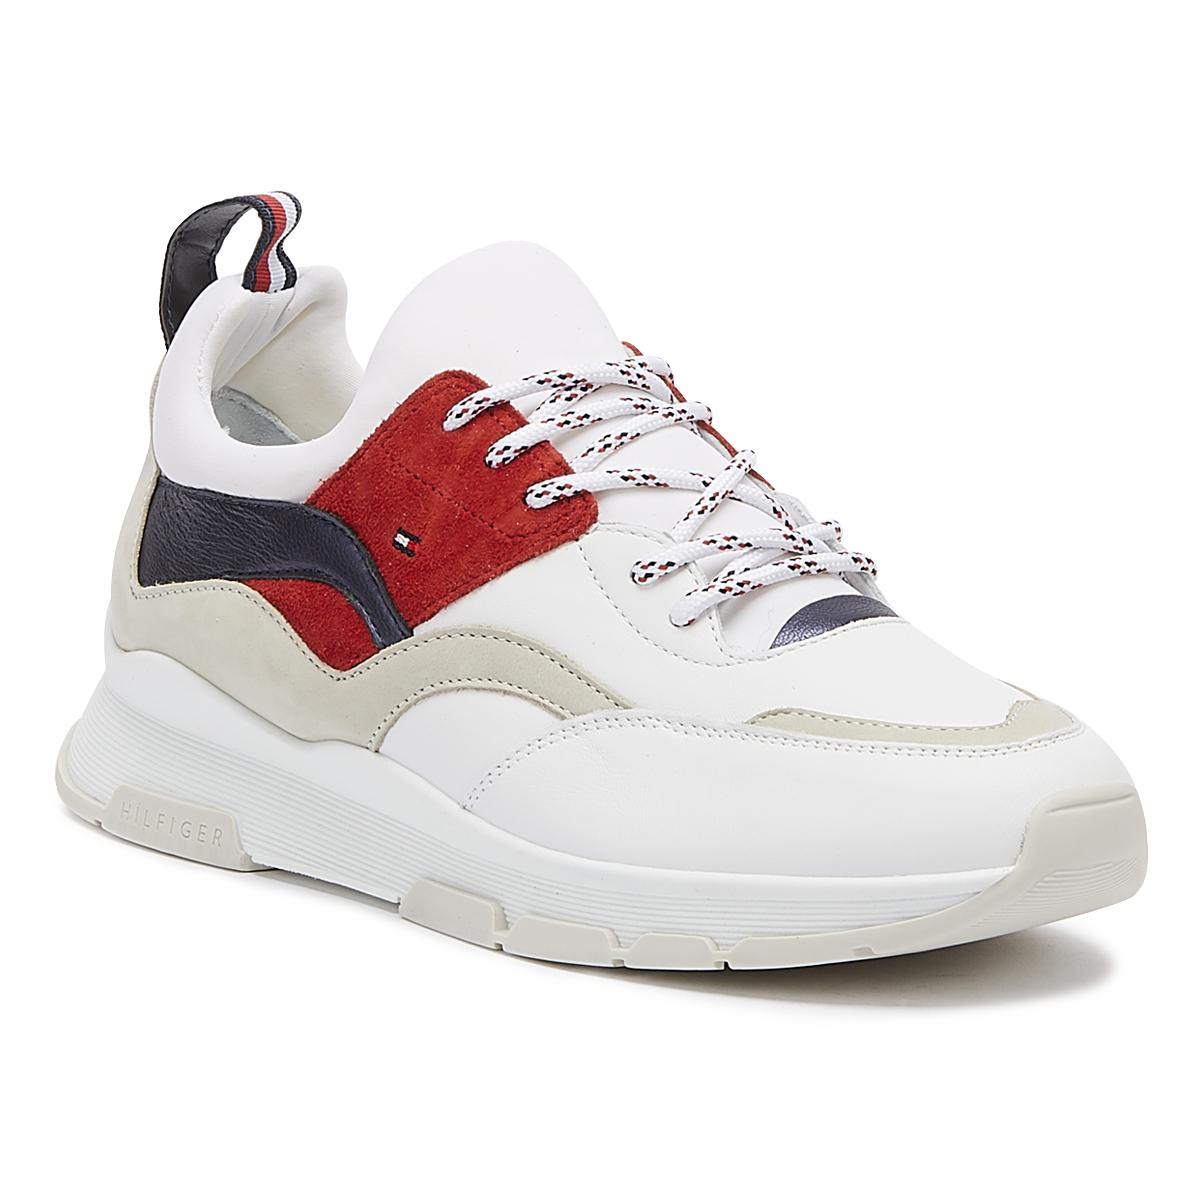 d1e874077 Lyst - Tommy Hilfiger Lifestyle Womens Rwb Trainers in White